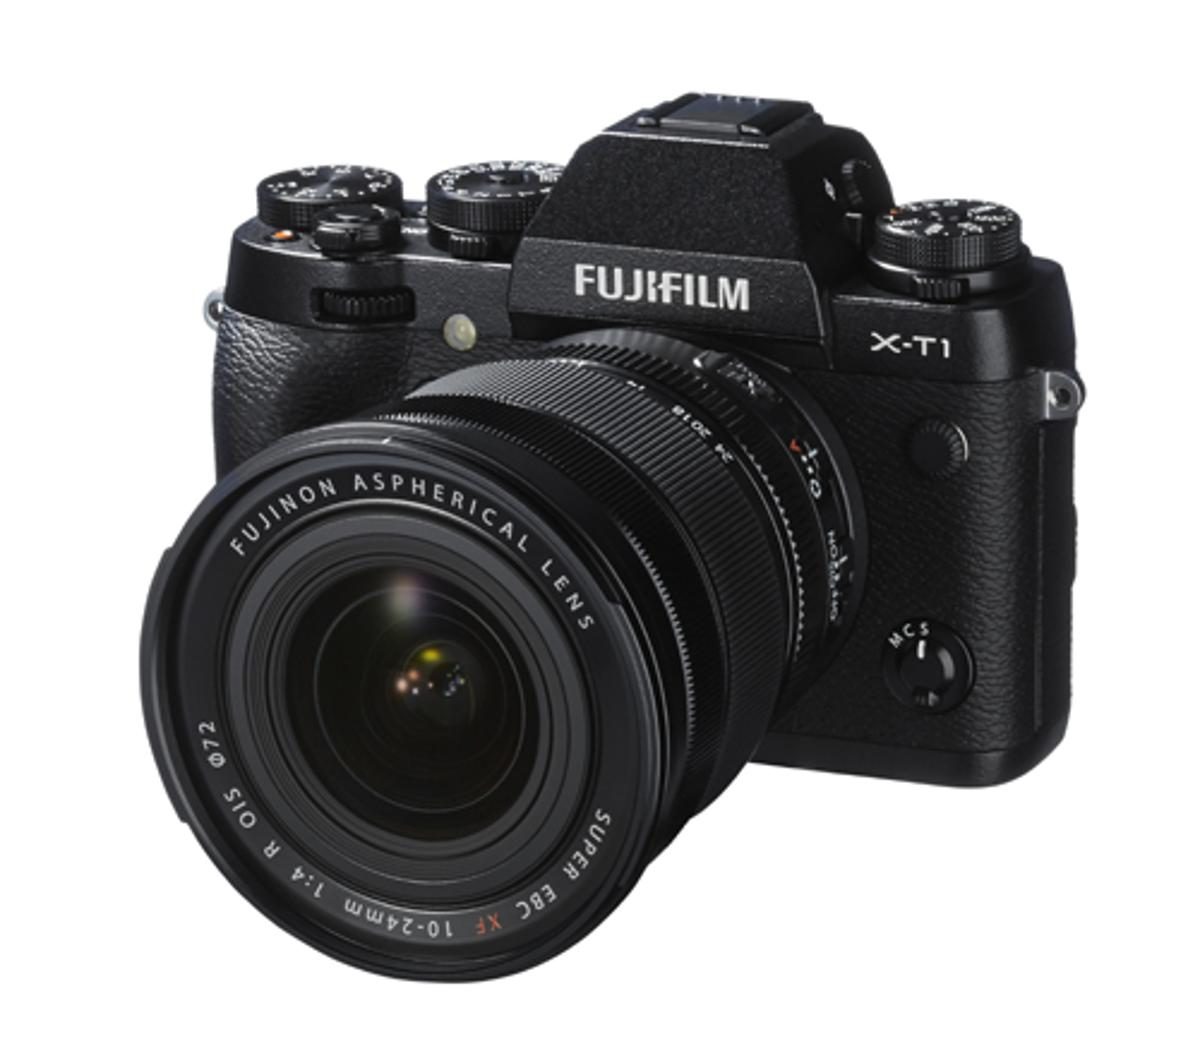 The Fujifilm X-T1 mirrorless interchangeable lens camera